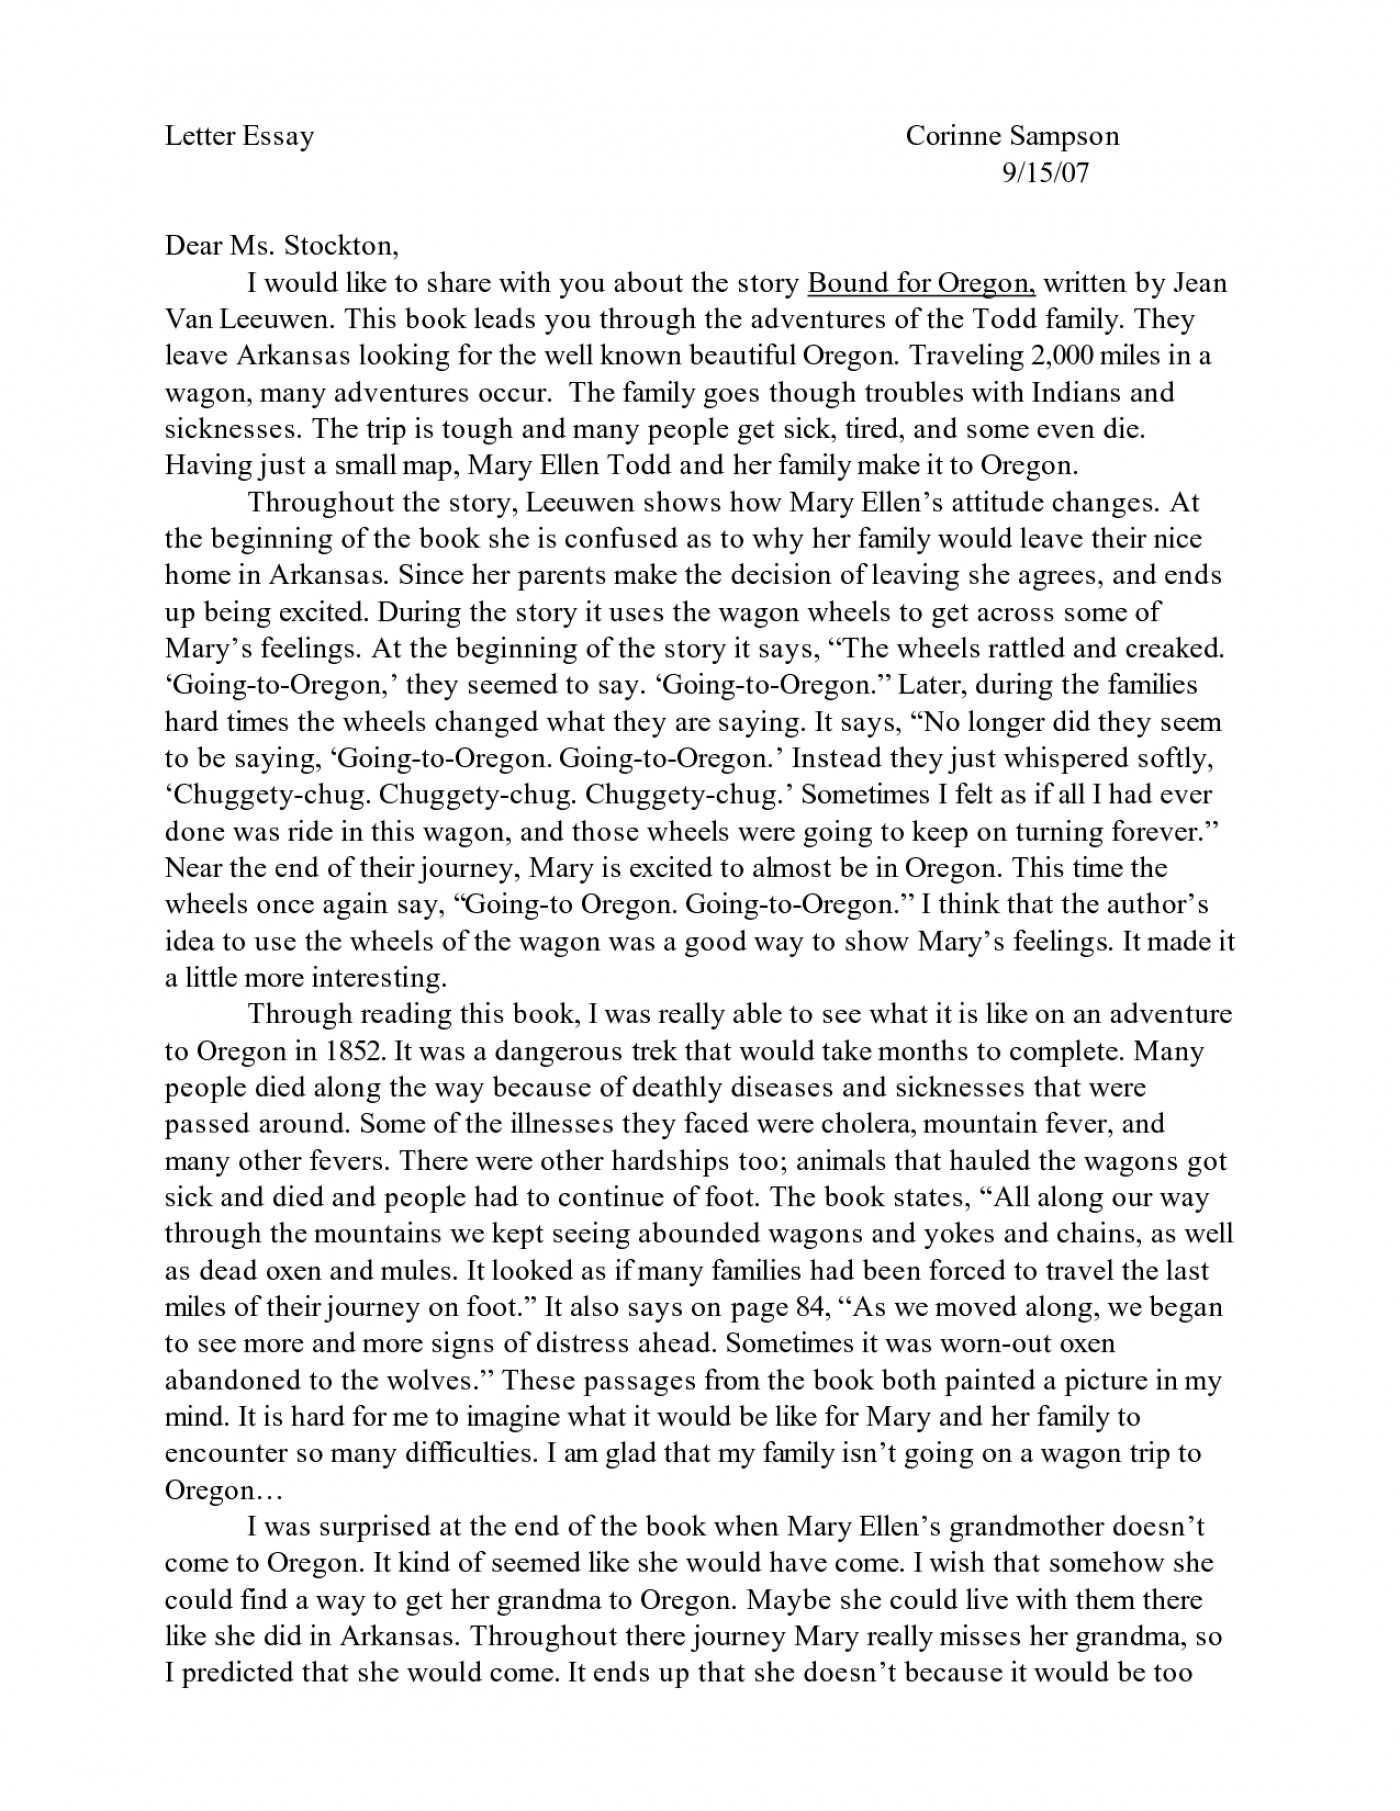 Best college essays